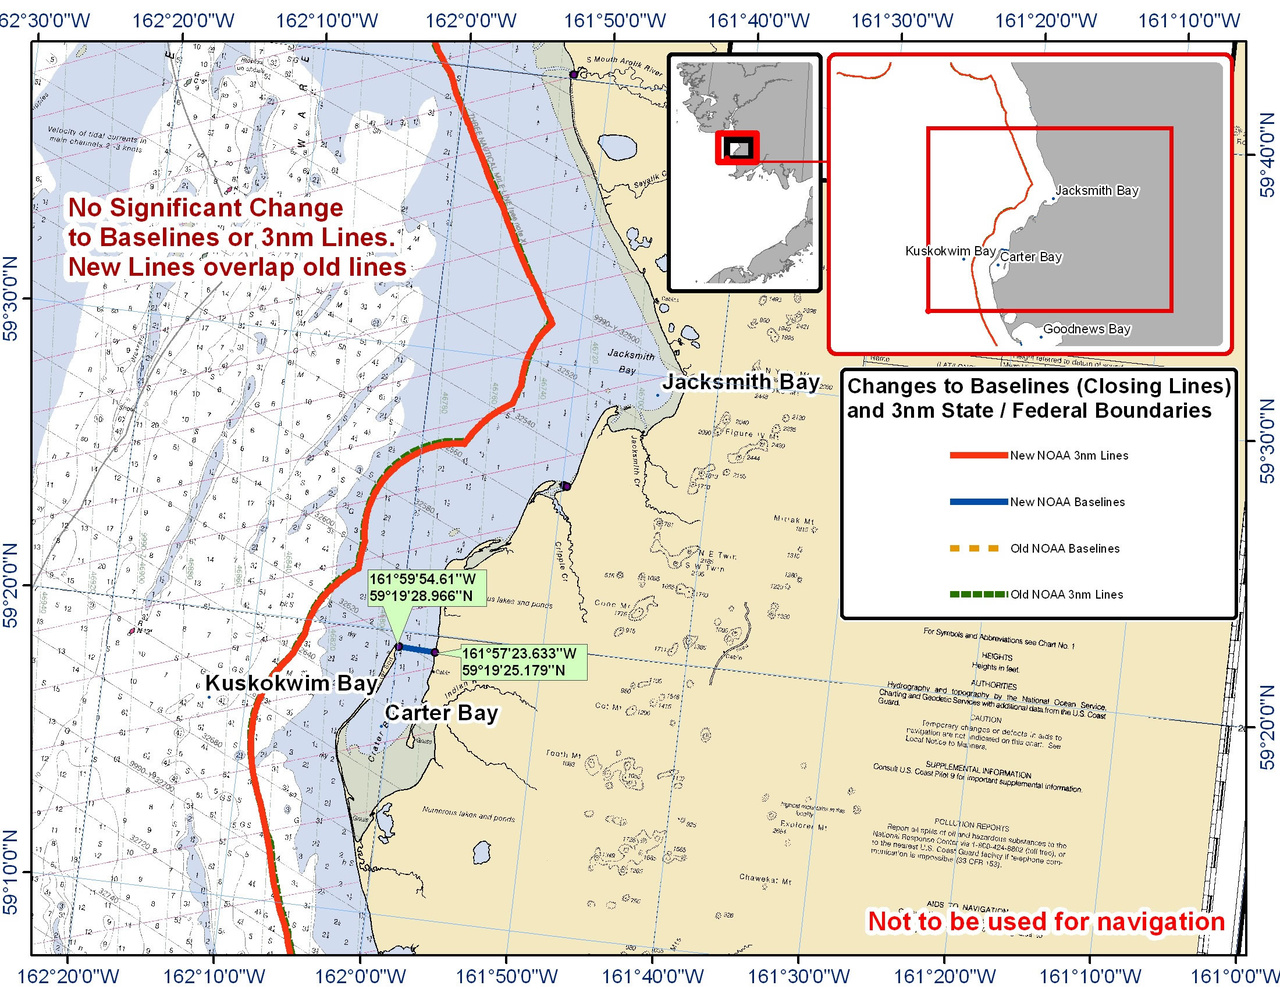 Chart for Carter Bay and the Surrounding Area